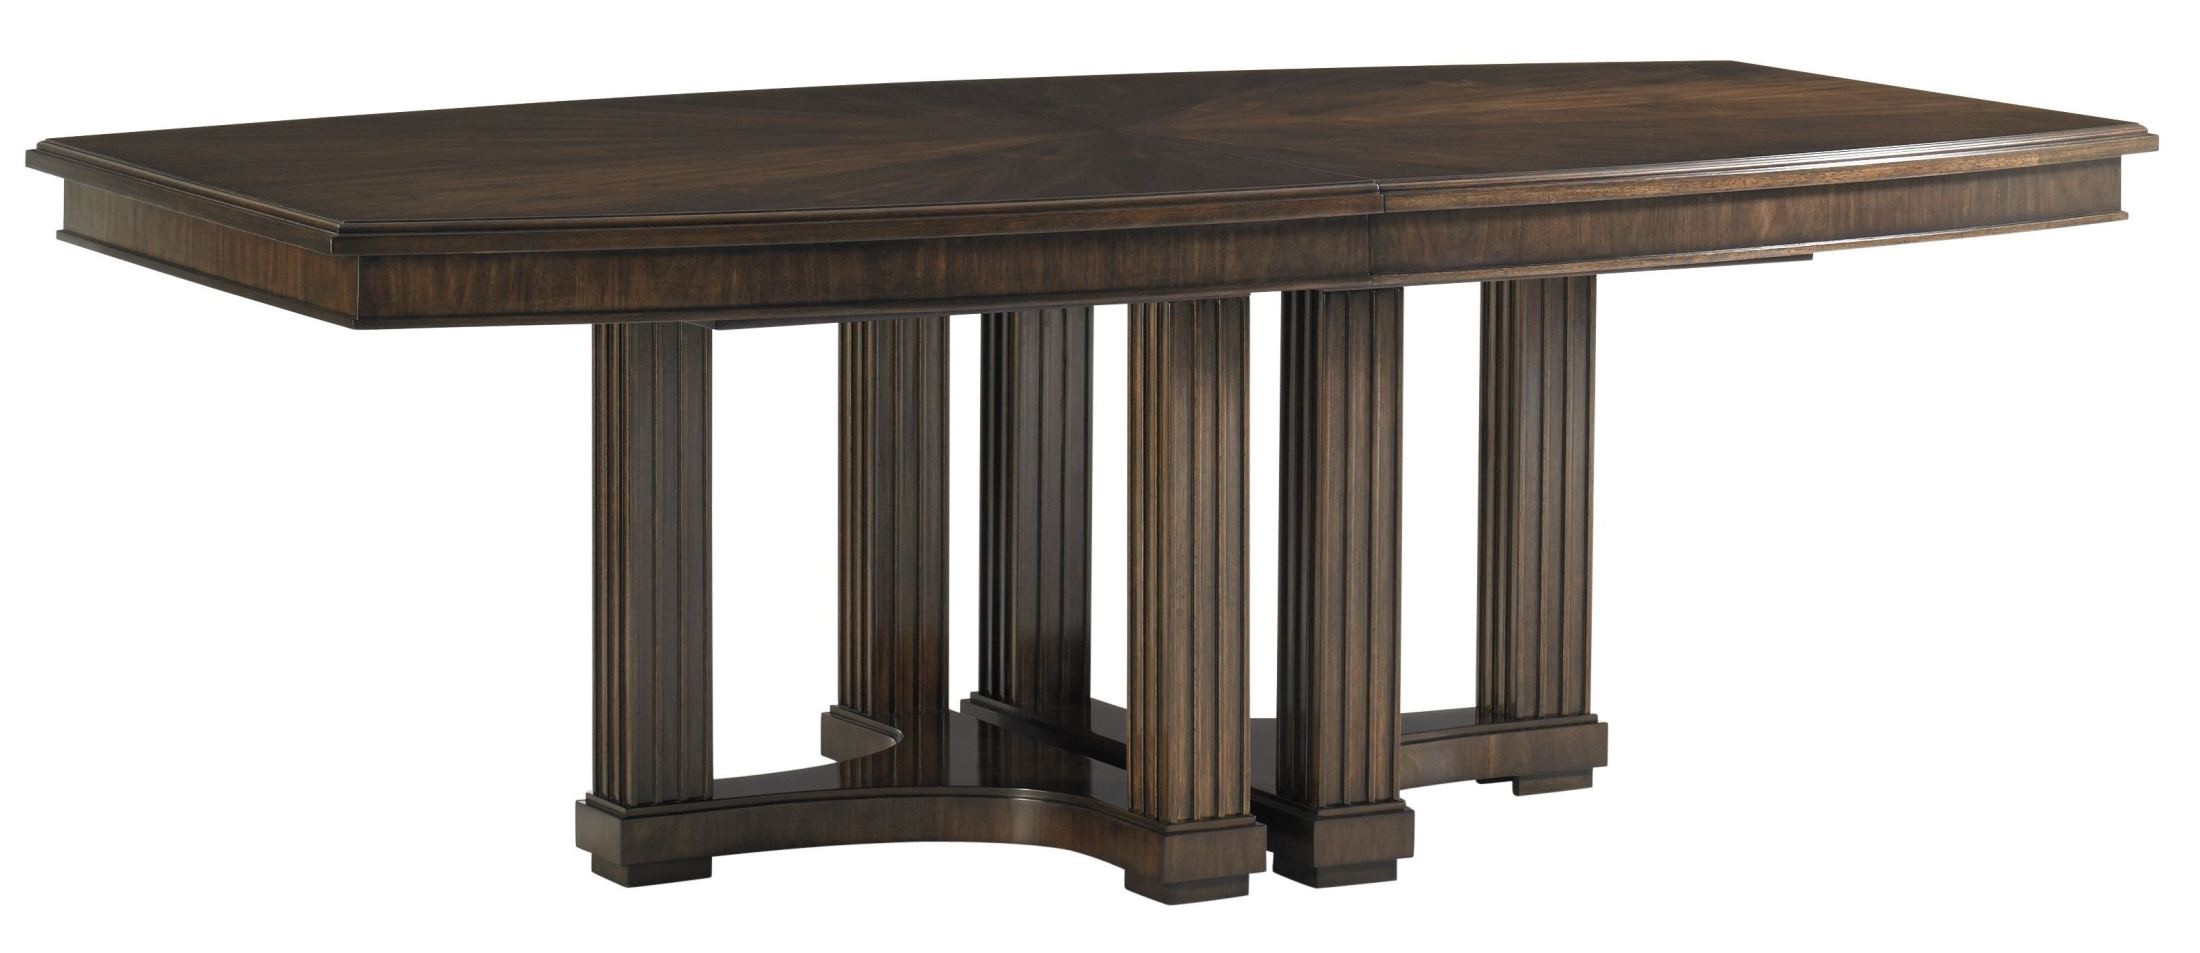 Stanley Dining Room Table Crestaire Porter Lola Double Pedestal Extendable Dining